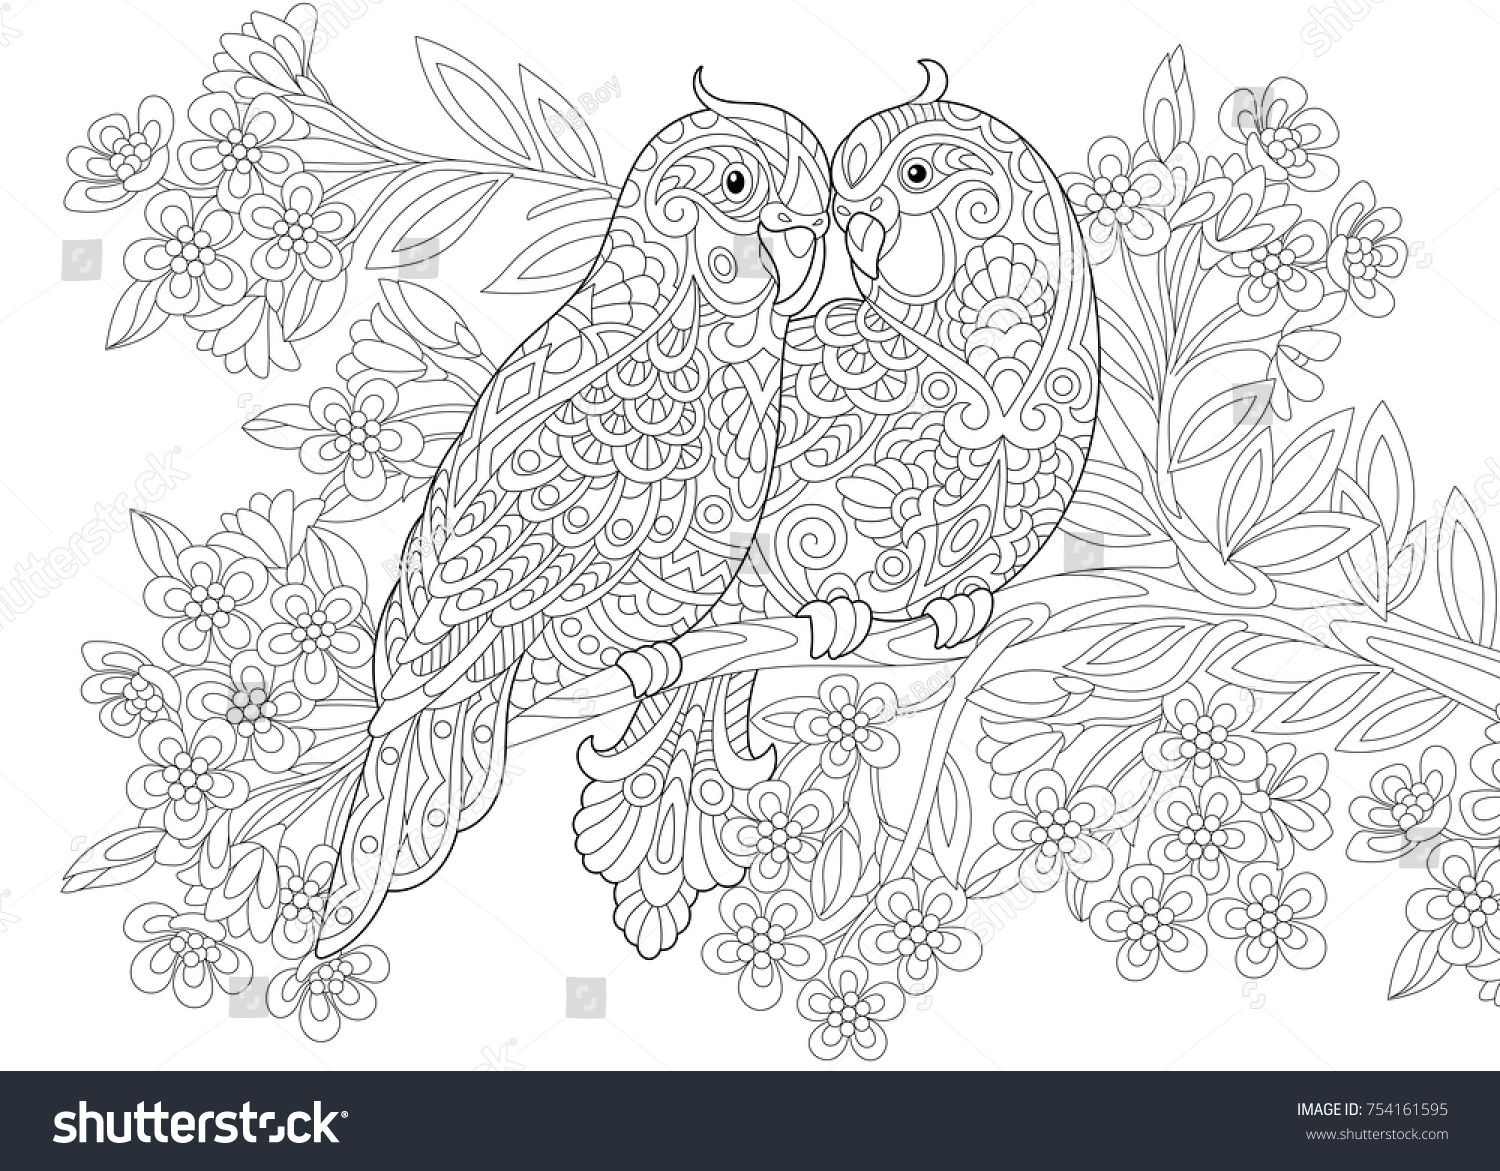 Coloring page of two parrots in love and floral background with ...